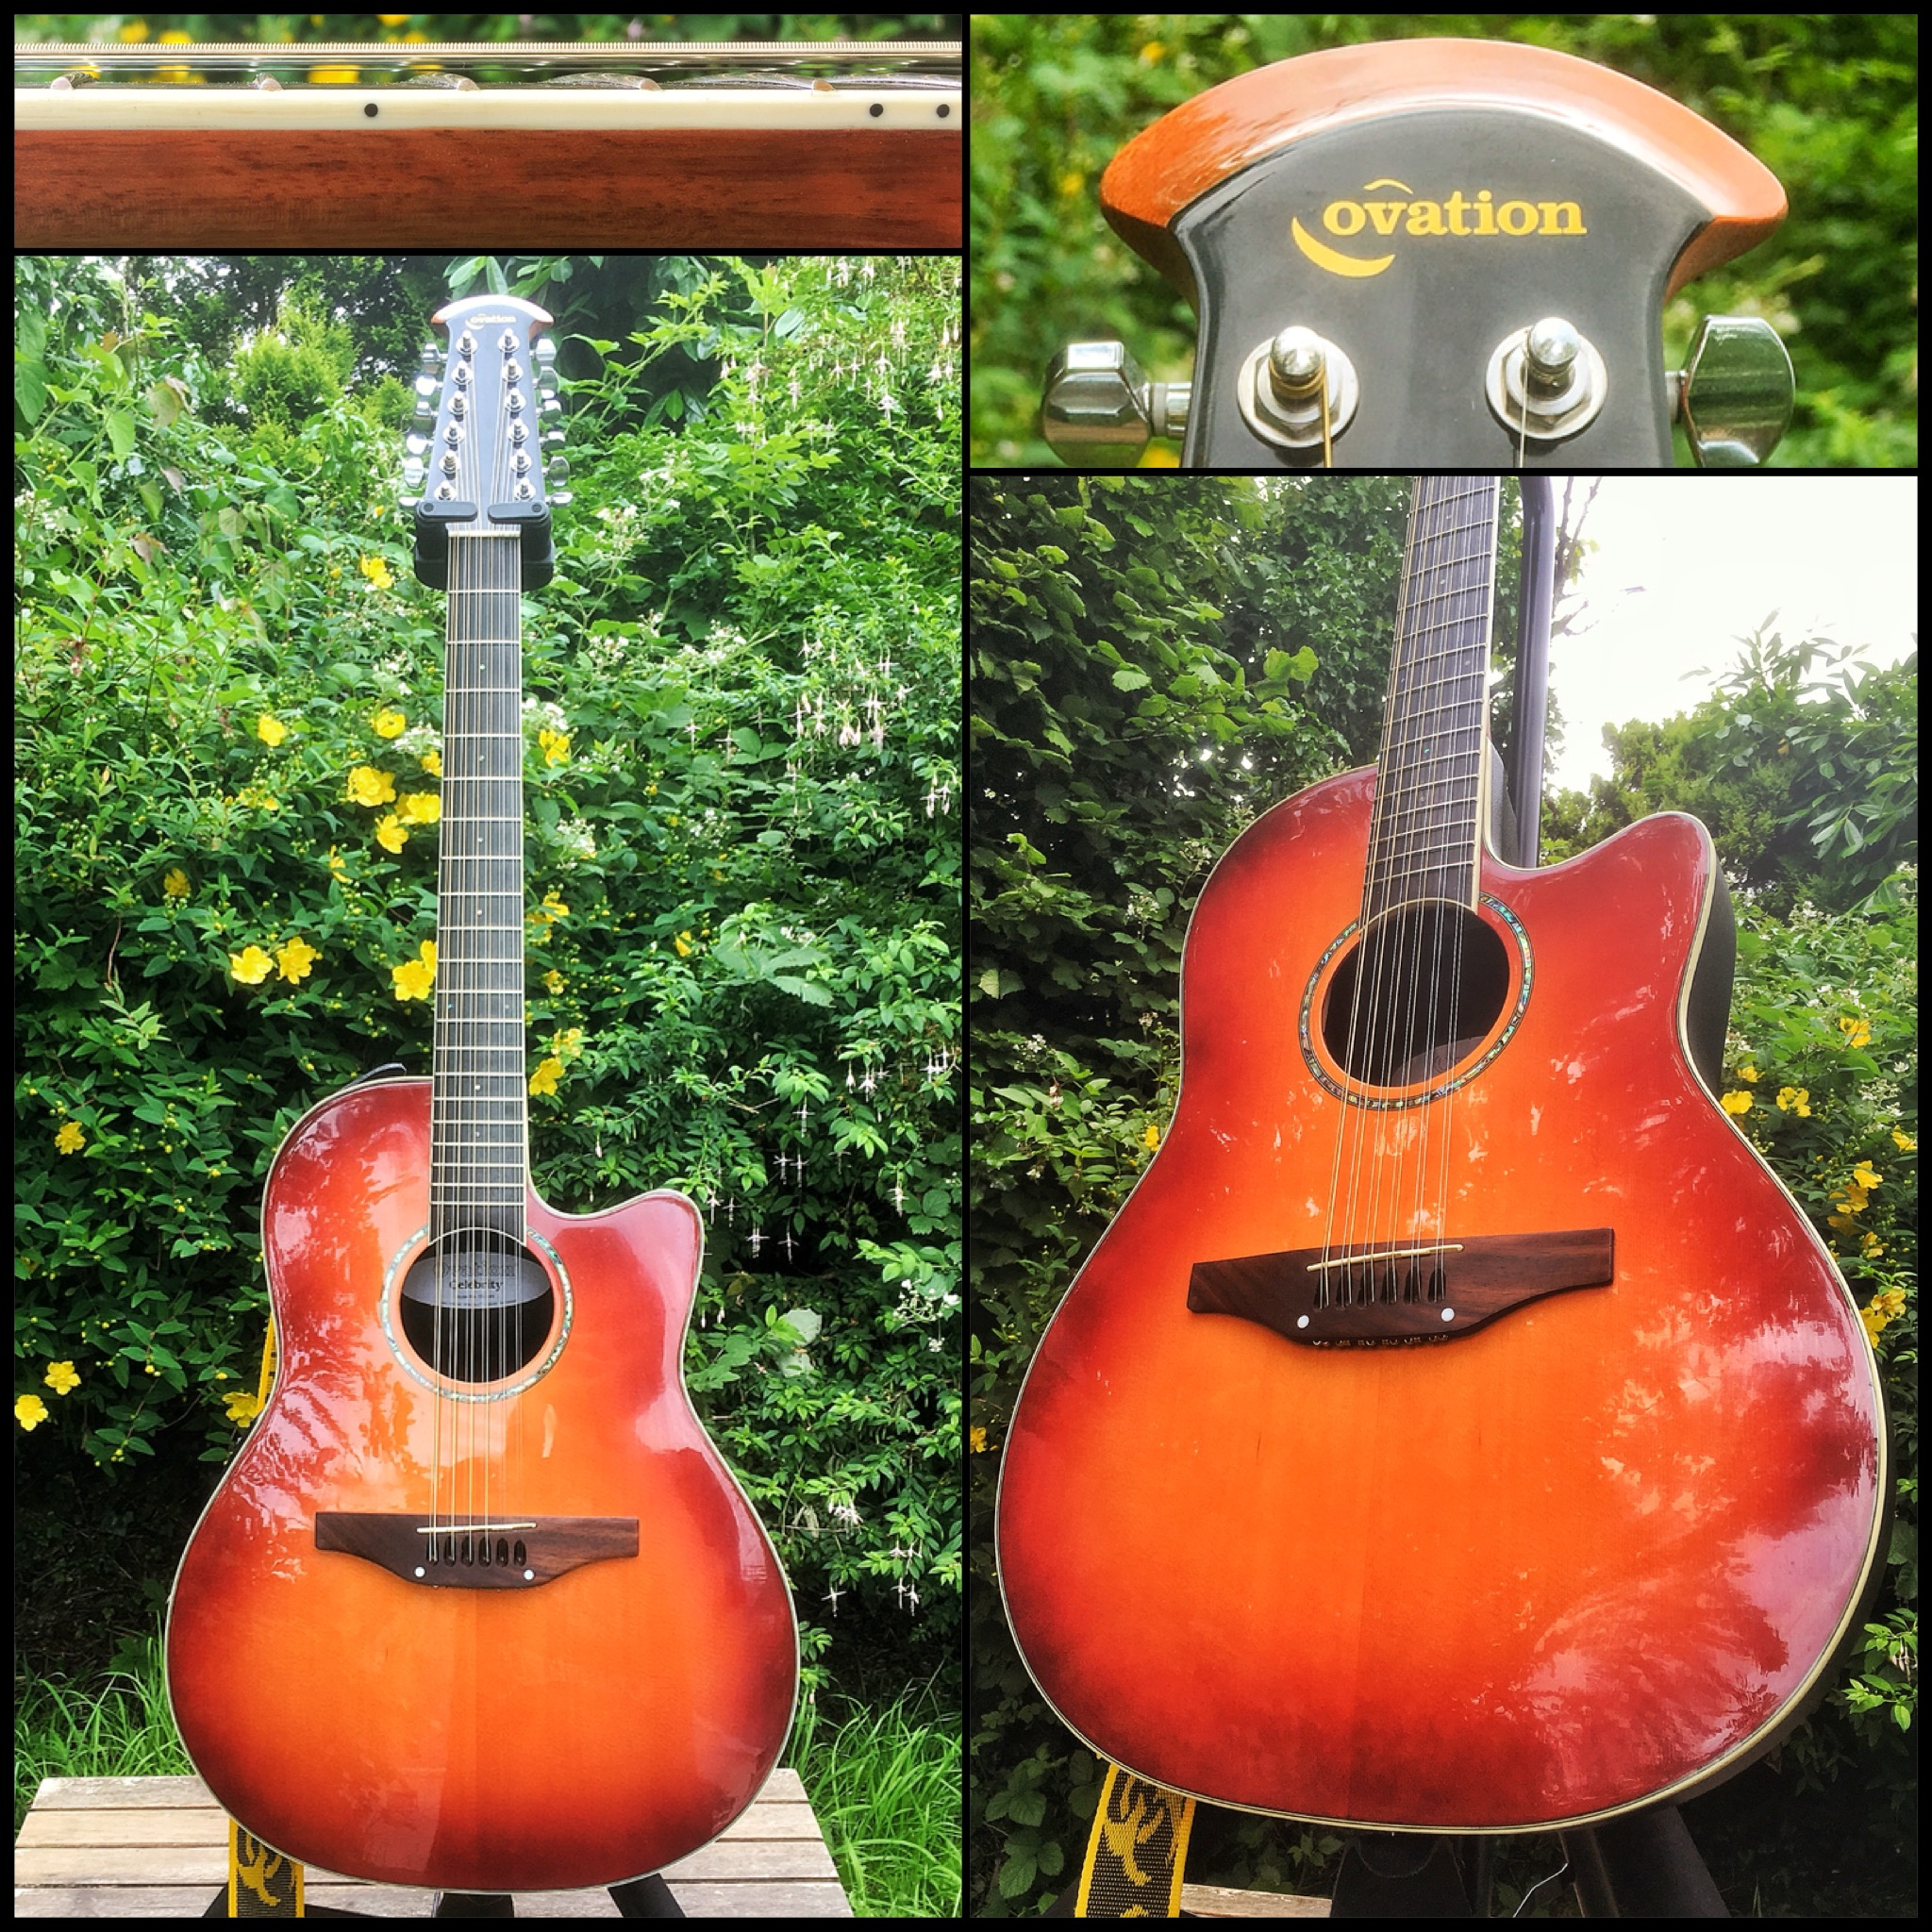 Ovation 12 string acoustic